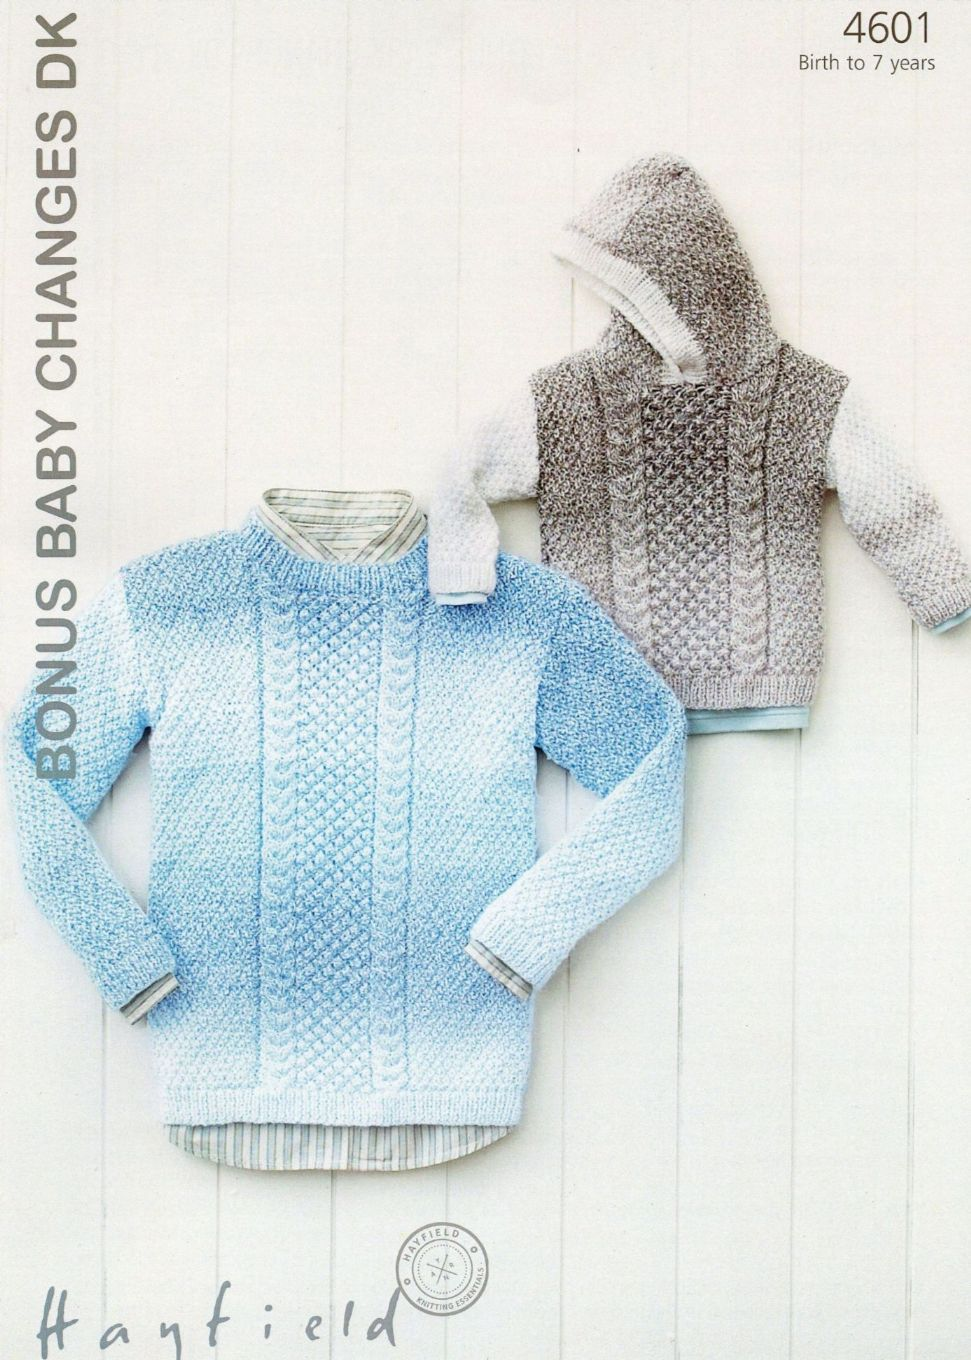 Hayfield Knitting Patterns For Babies : 4601 - HAYFIELD BONUS BABY CHANGES DK SWEATER KNITTING PATTERN -TO FIT BIRTH ...